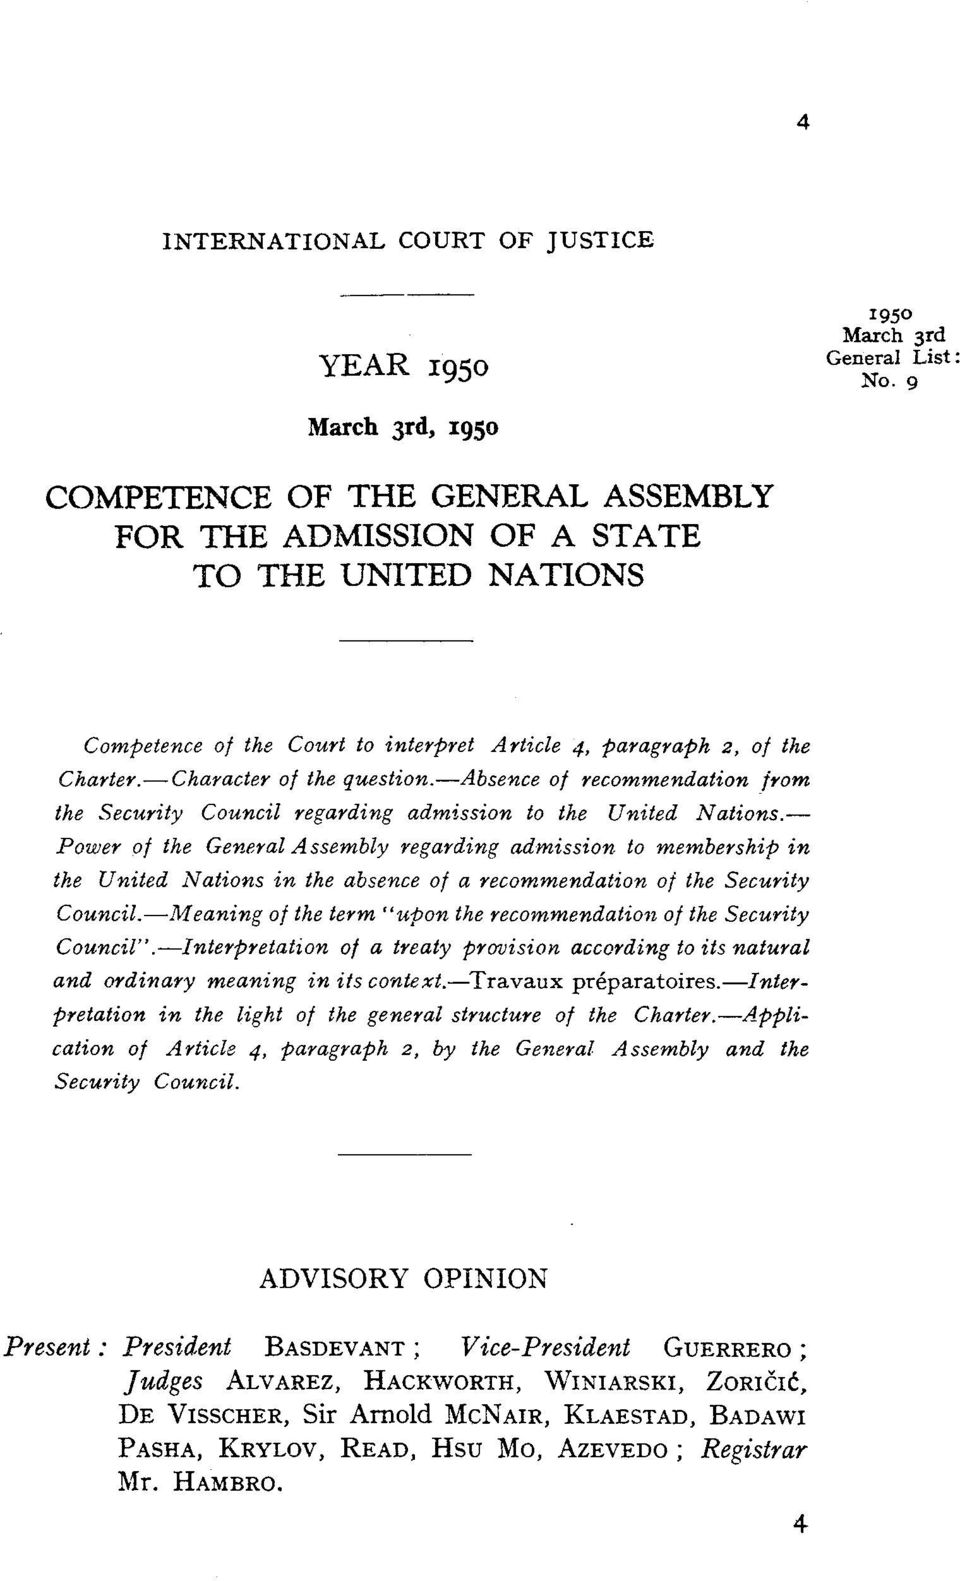 -absence of recommendation jrom the Security Council regarding admission to the United Nations.